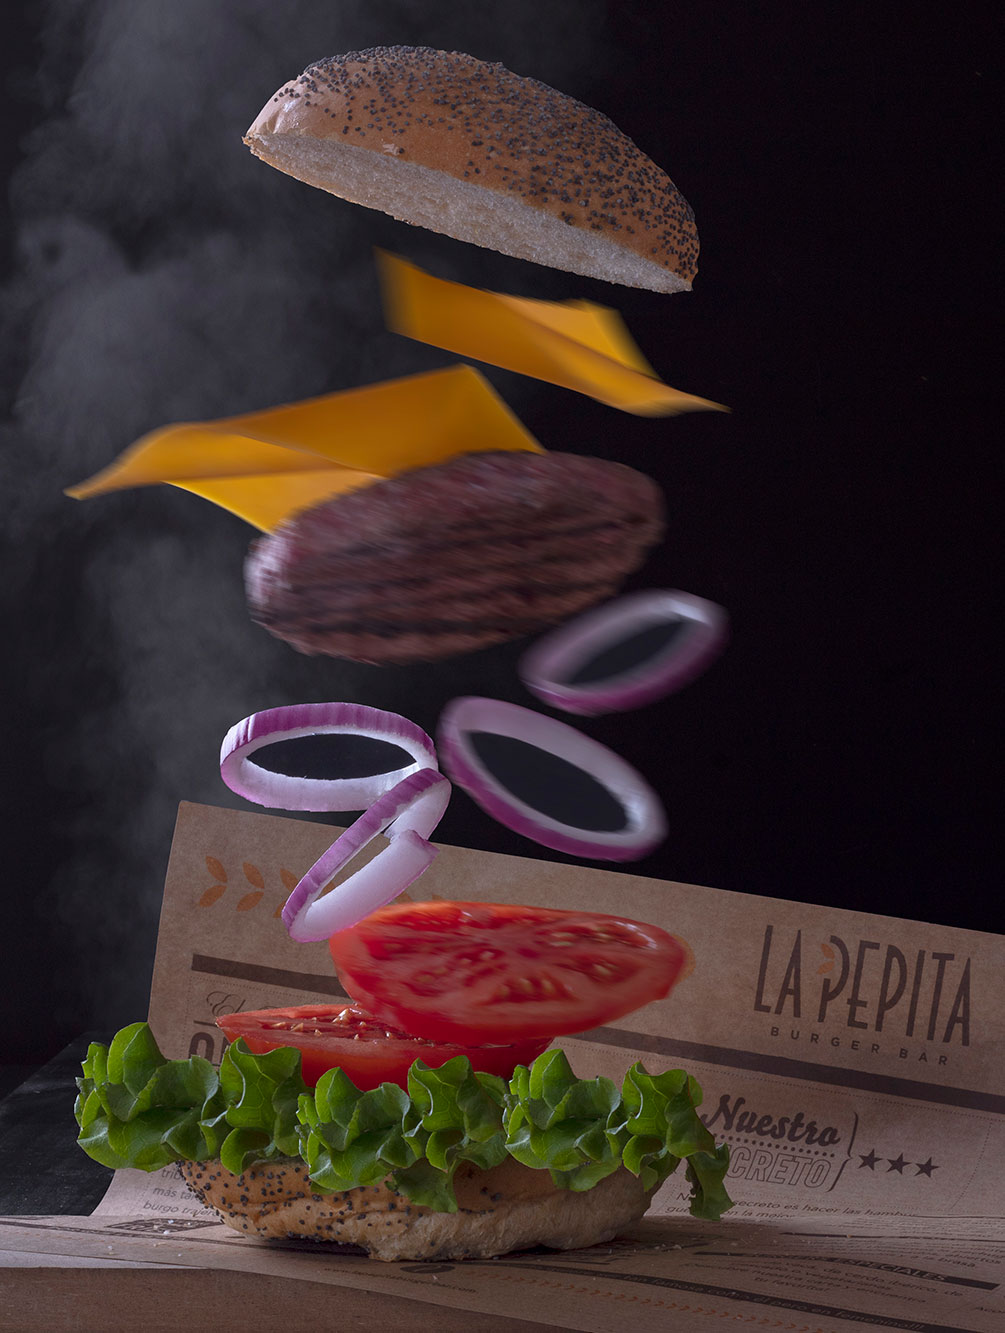 LA-PEPITA-BURGER-MOVIMIENTO